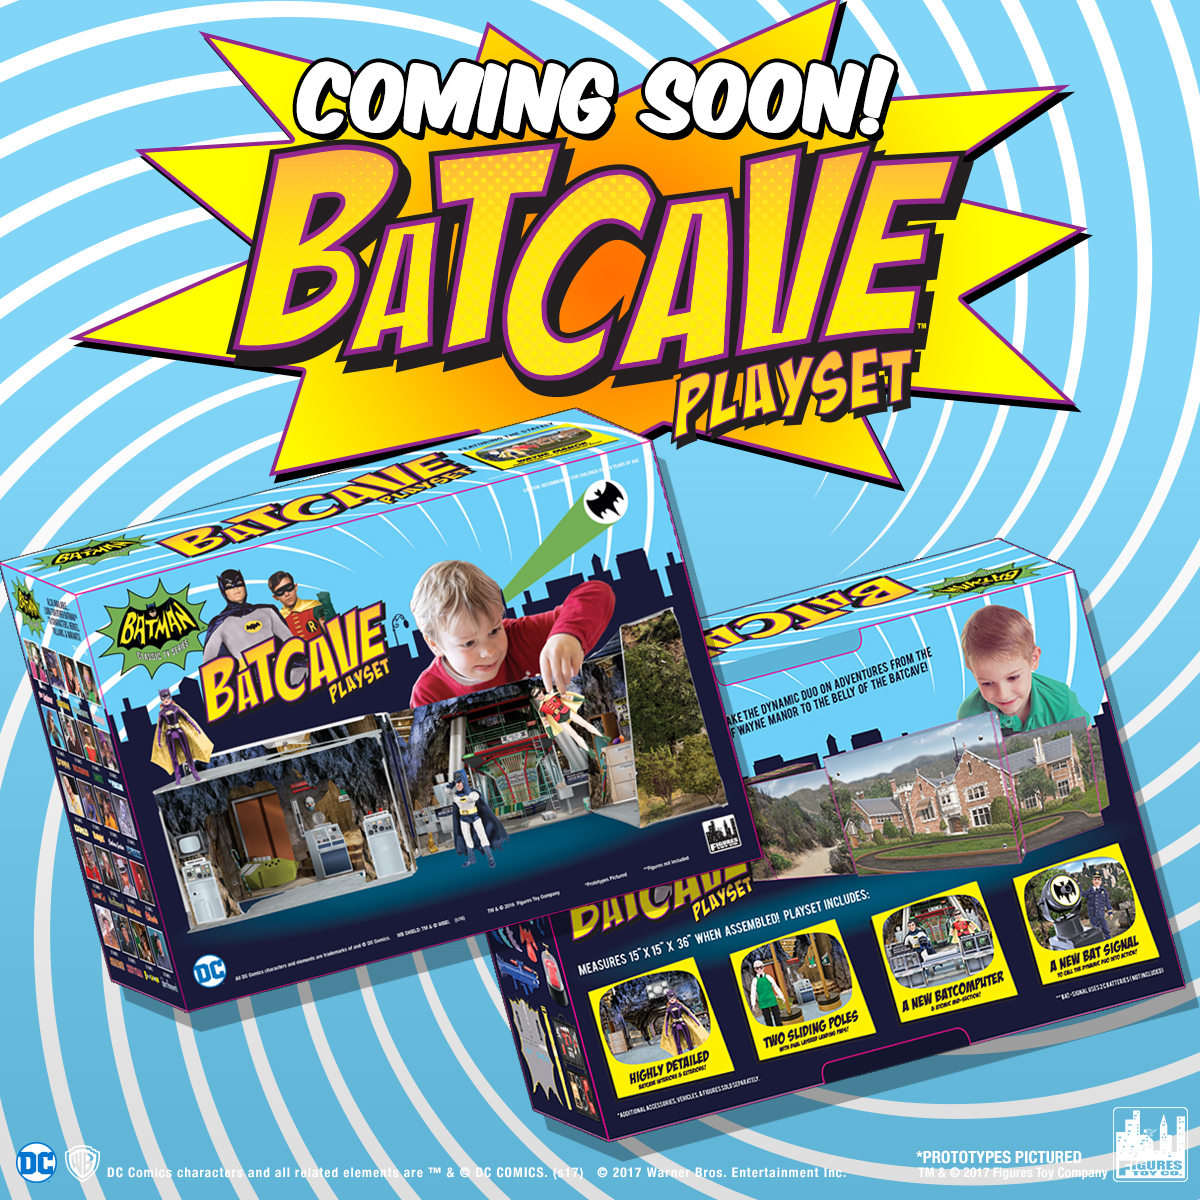 Mego Museum Exclusive! Figures Toy Co 1966 Batcave playset.